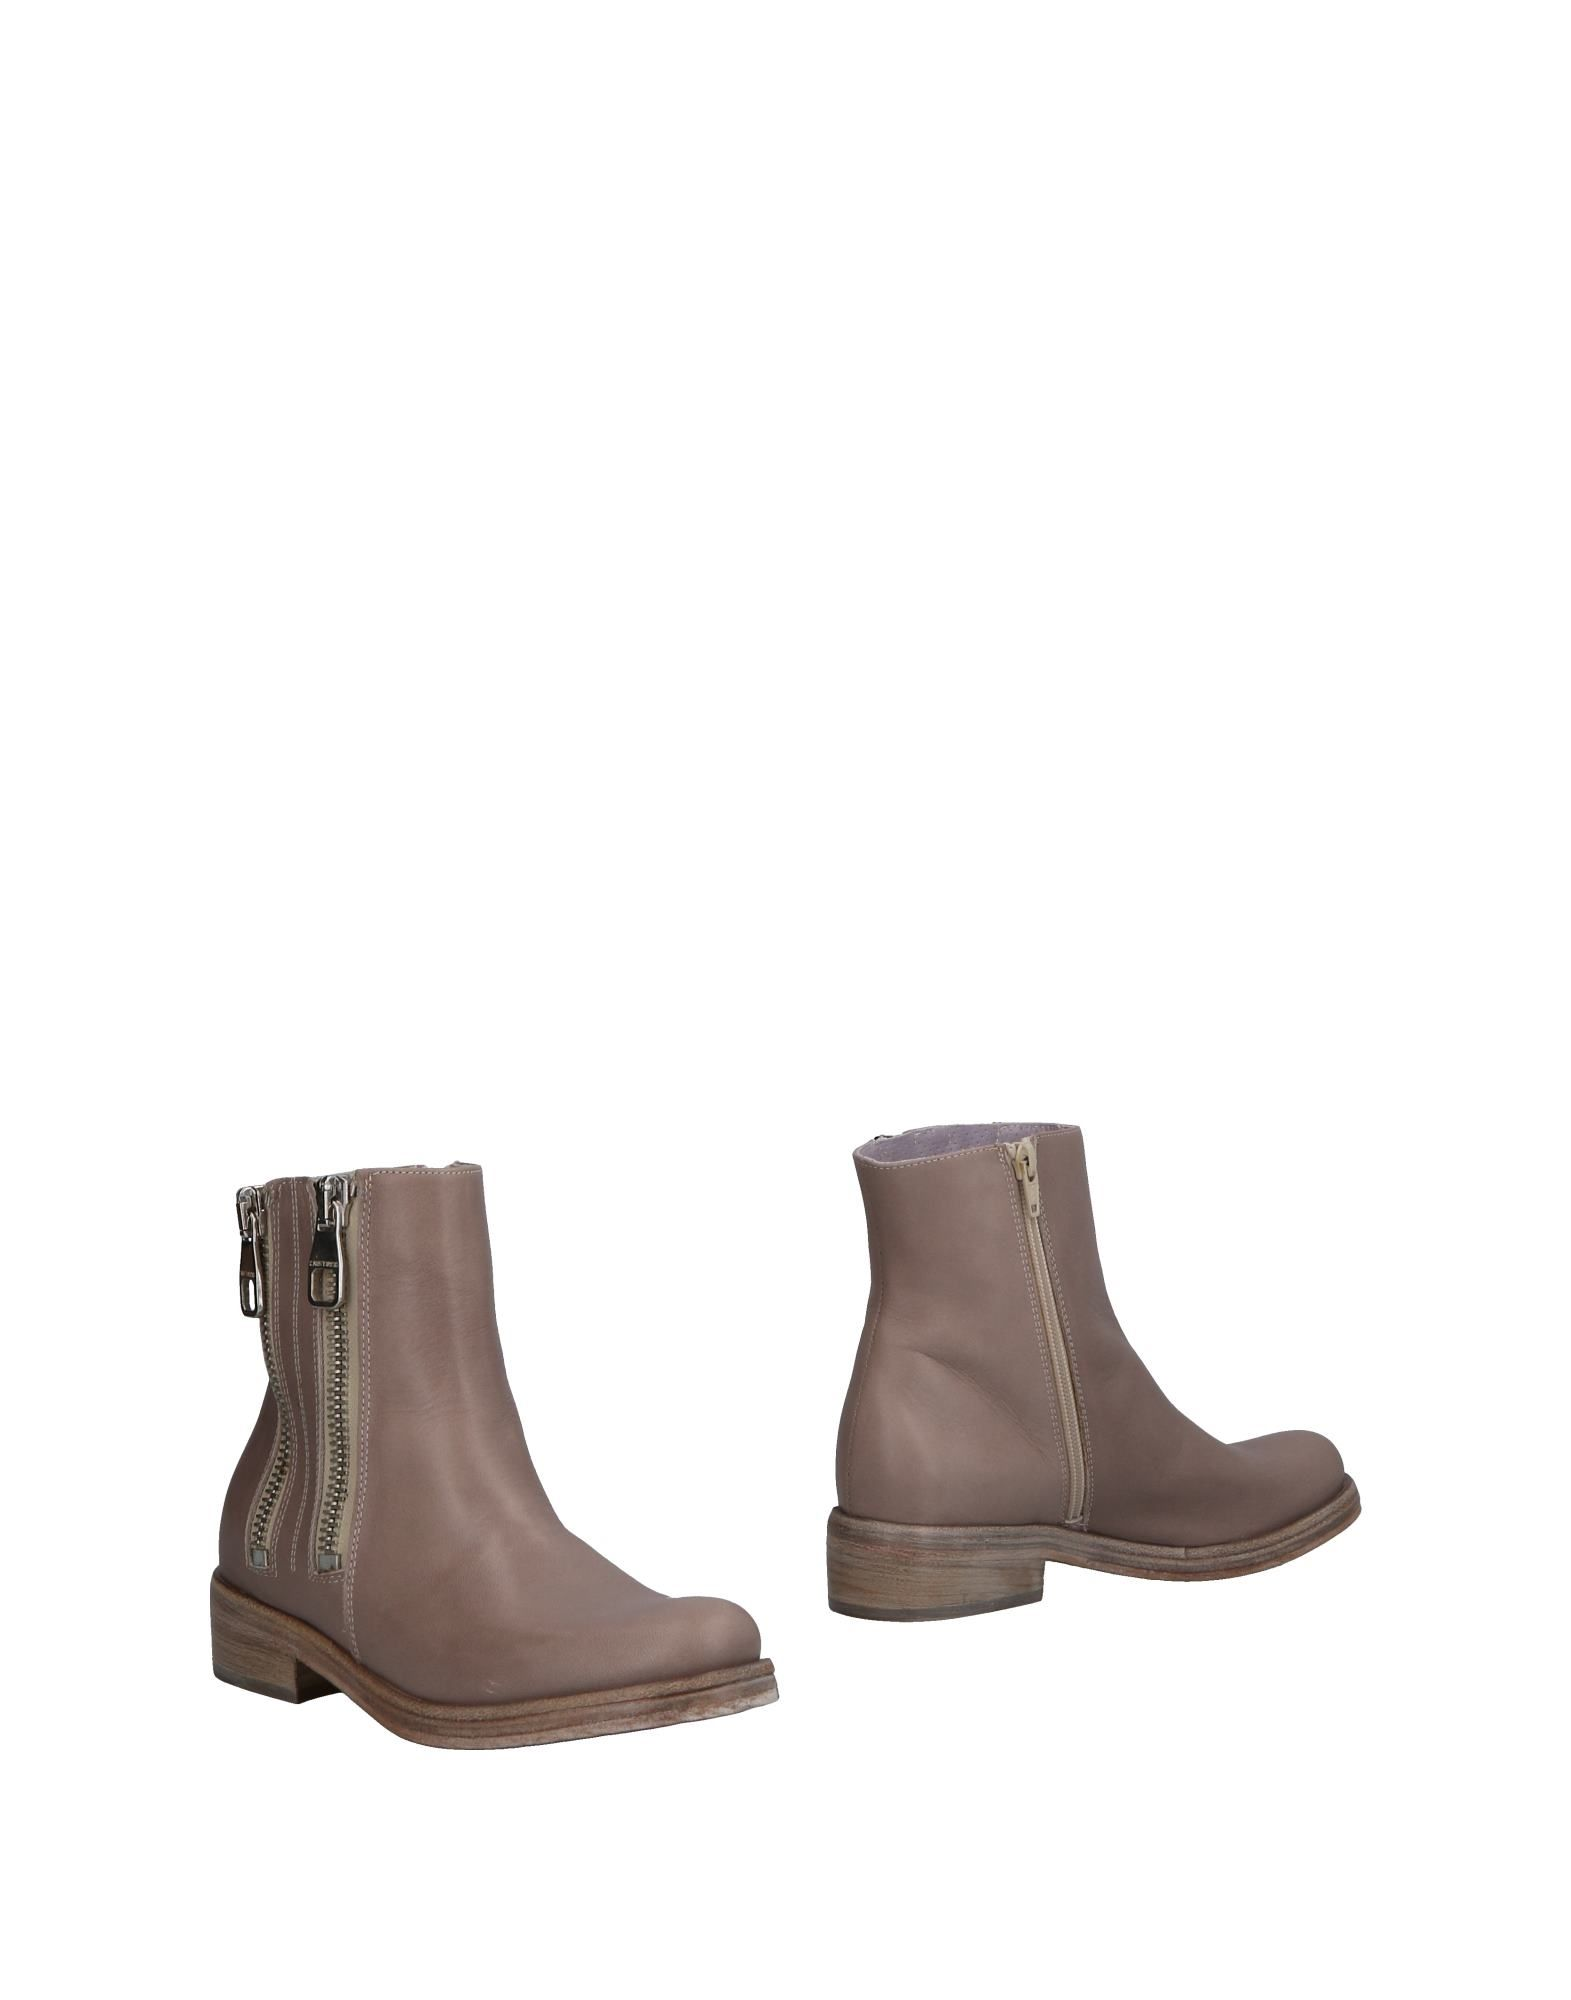 CRISTIAN G | CRISTIAN G Ankle boots | Goxip